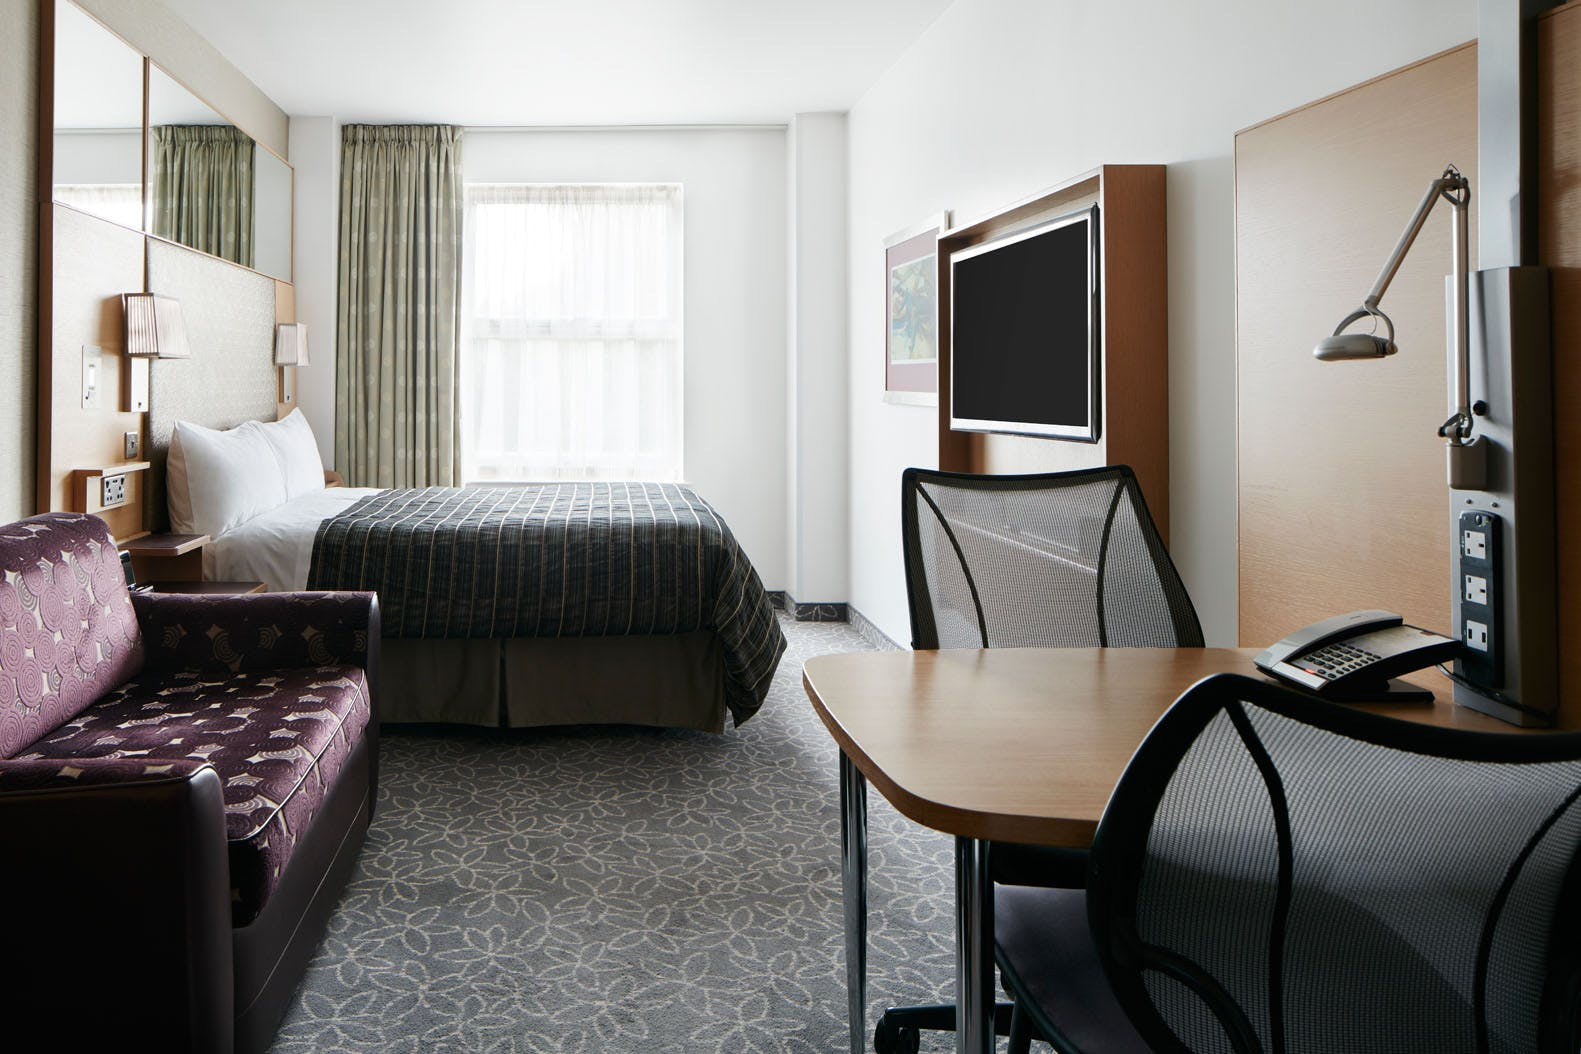 Superior Room at Club Quarters Hotel, Lincoln's Inn Fields